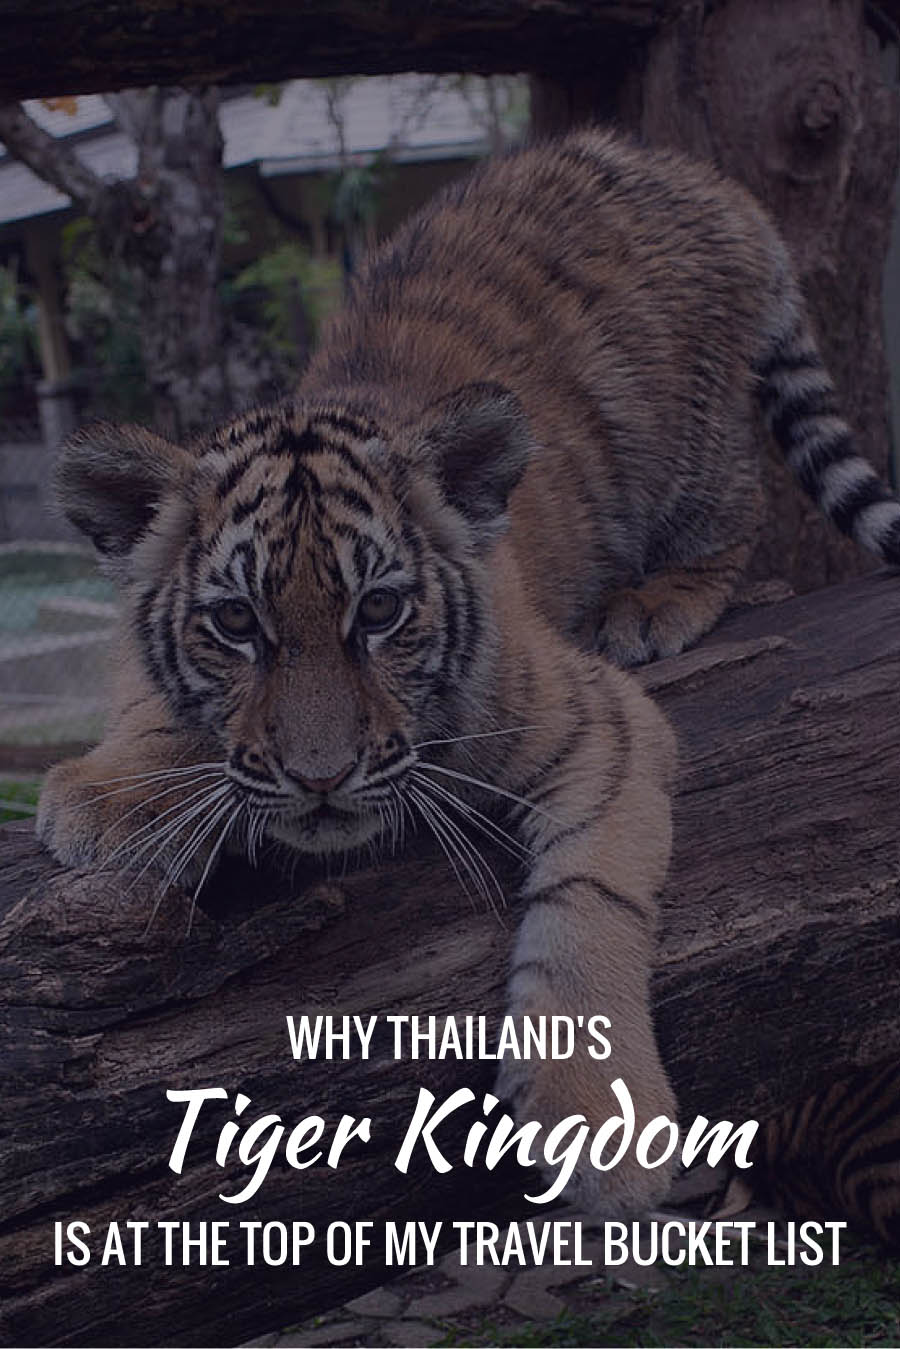 Why Thailand's Tiger Kingdom is at the top of my travel bucket list!